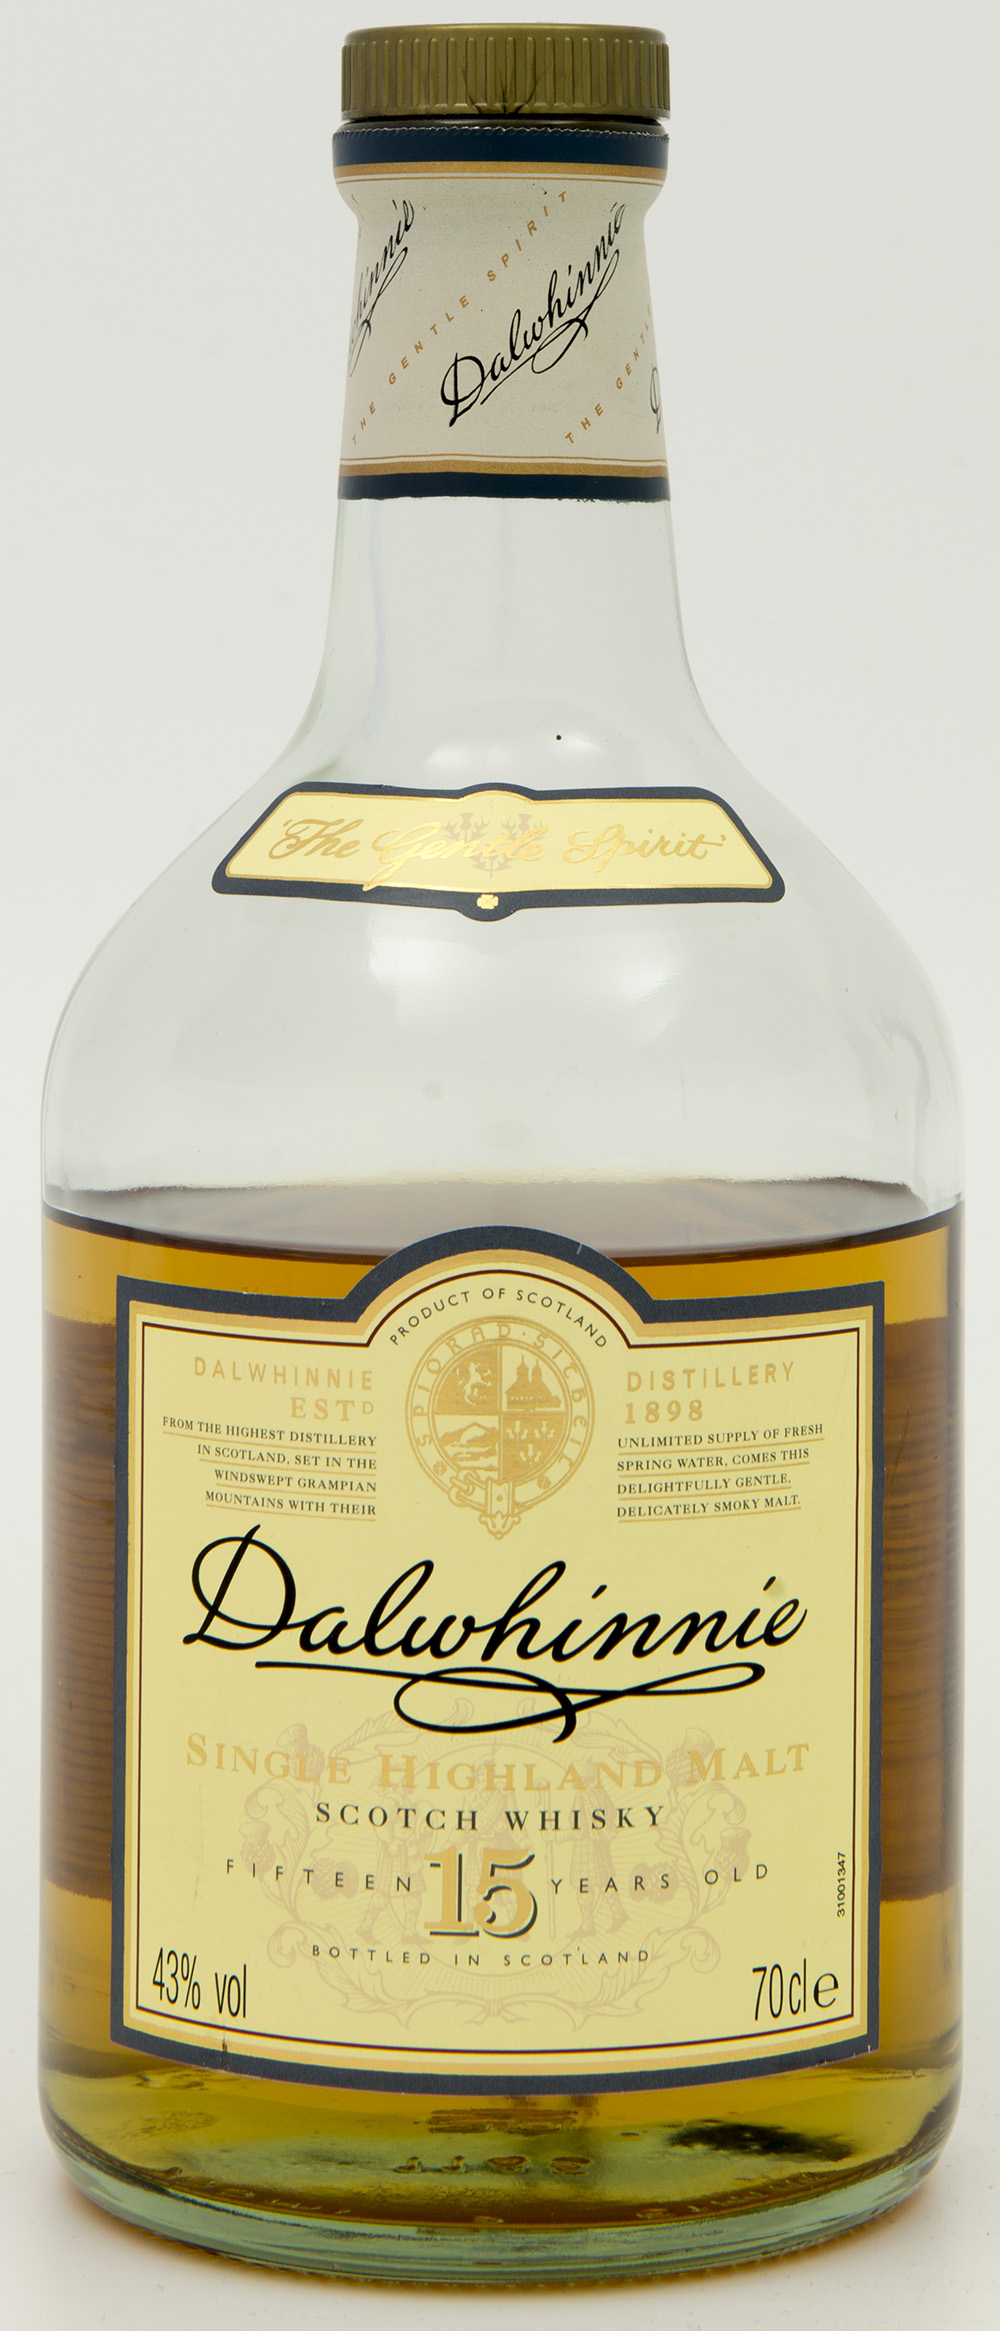 Billede: DSC_8169 - Dalwhinnie 15 - bottle front.jpg